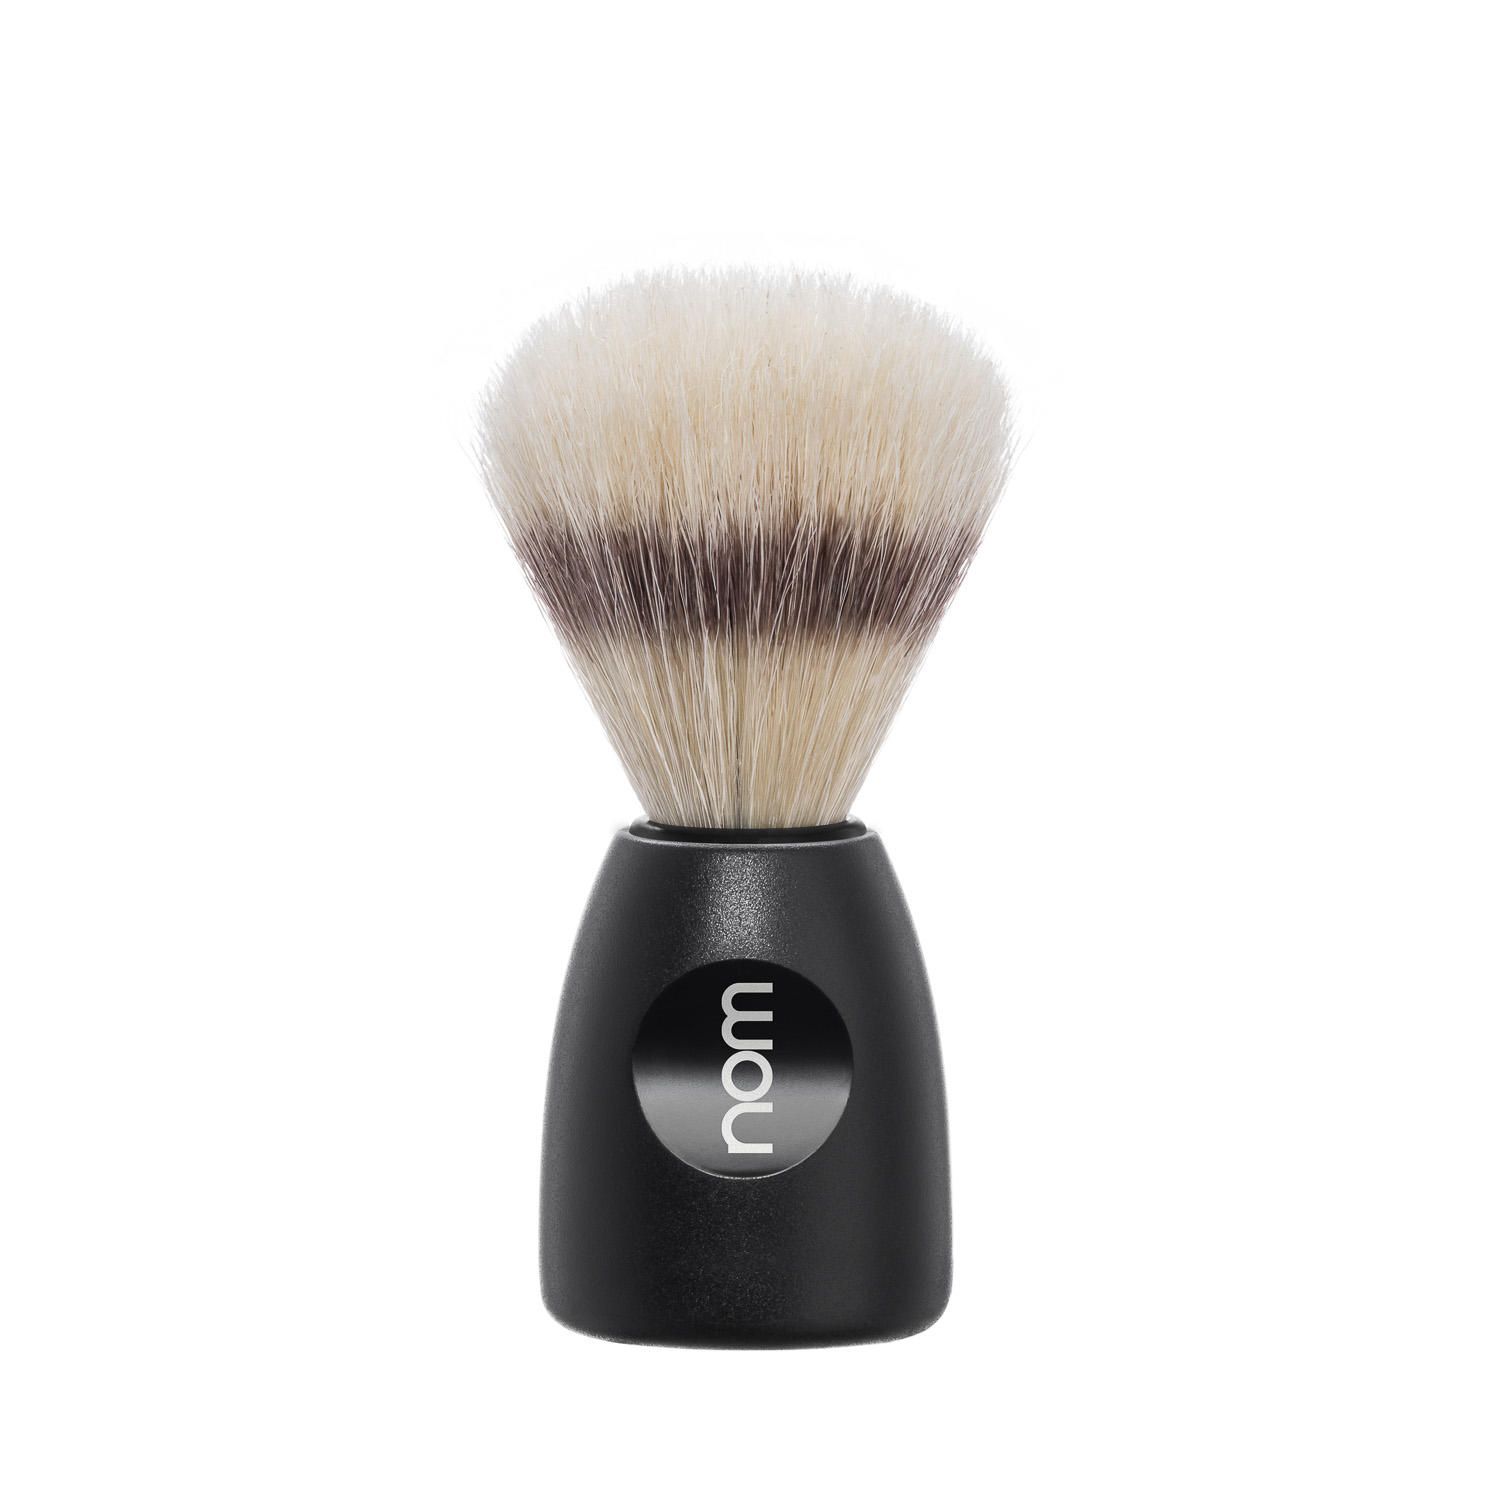 LASSE41BL NOM, LASSE in Black, Natural Bristle Shaving Brush